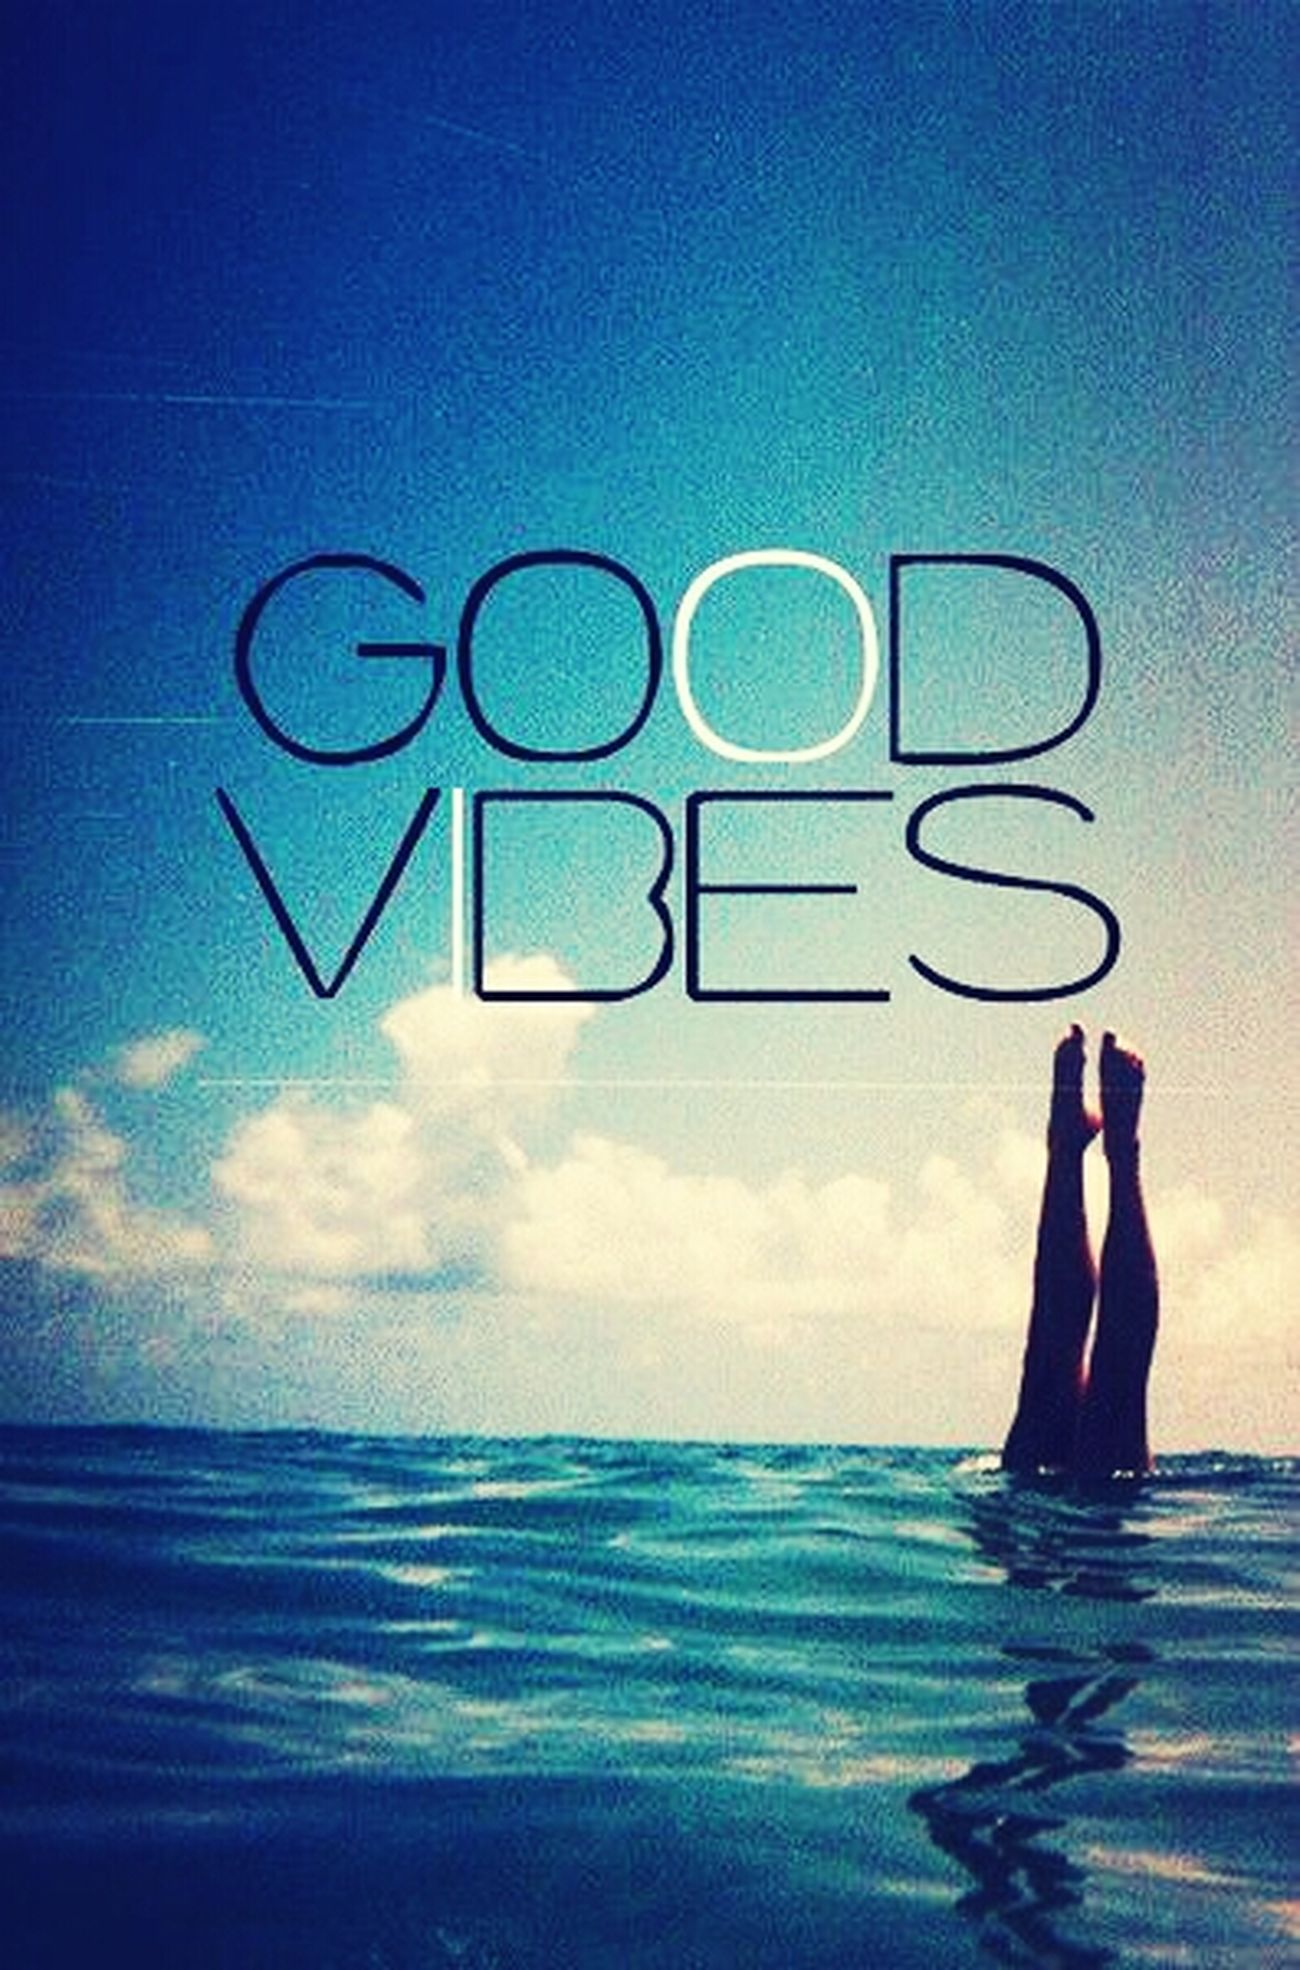 cant wait for summer & good vibes